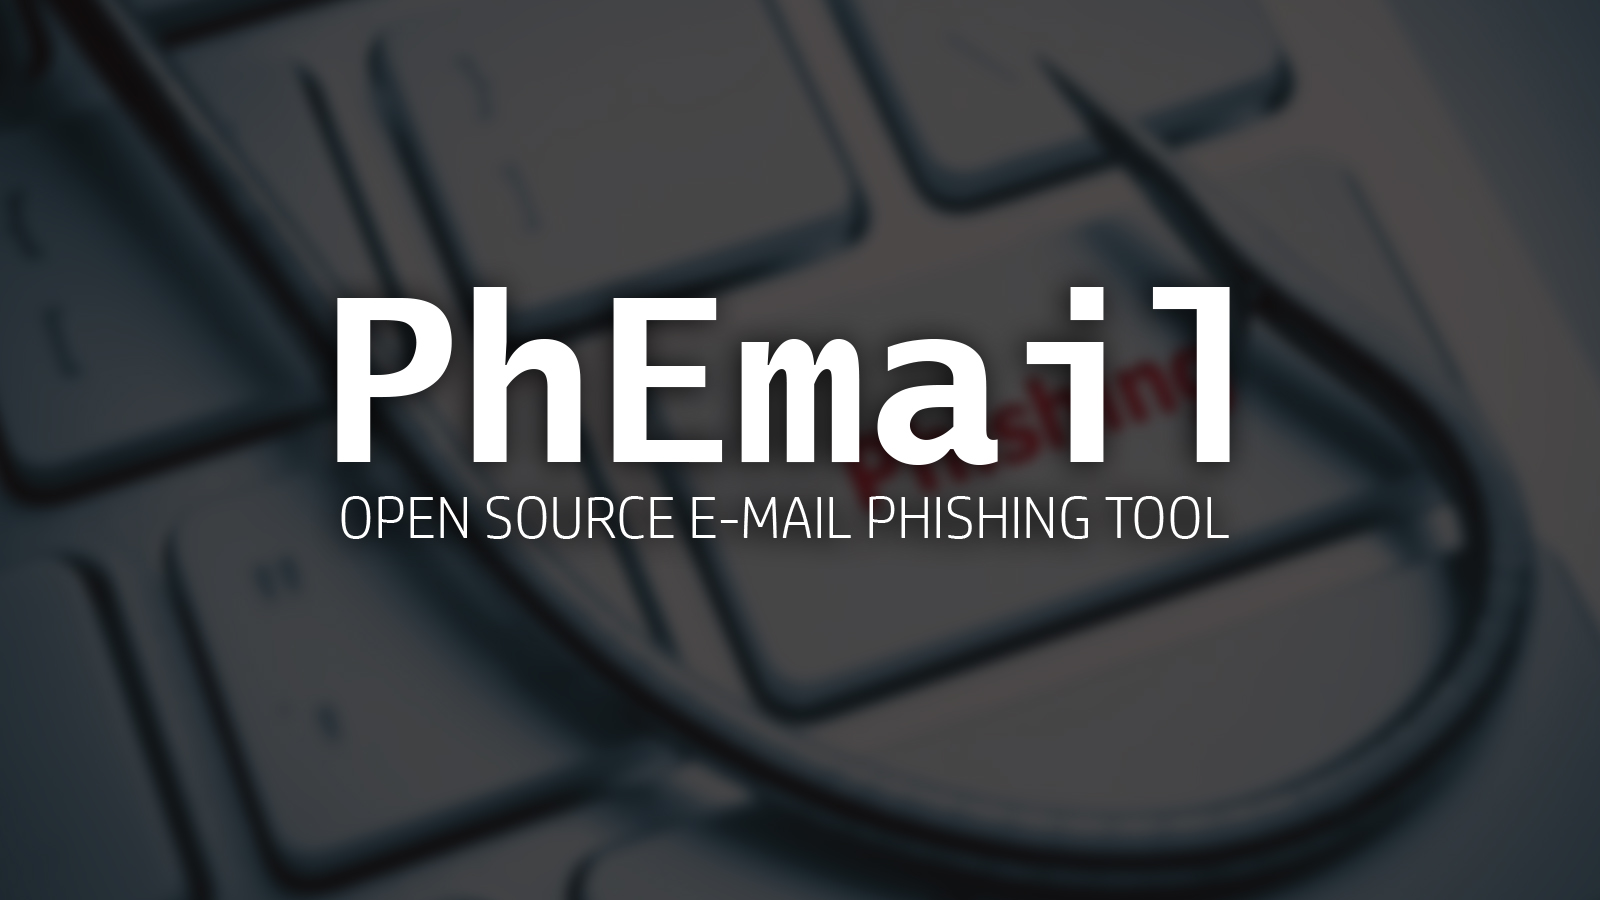 PhEmail -  Open Source E-mail Phishing Tool